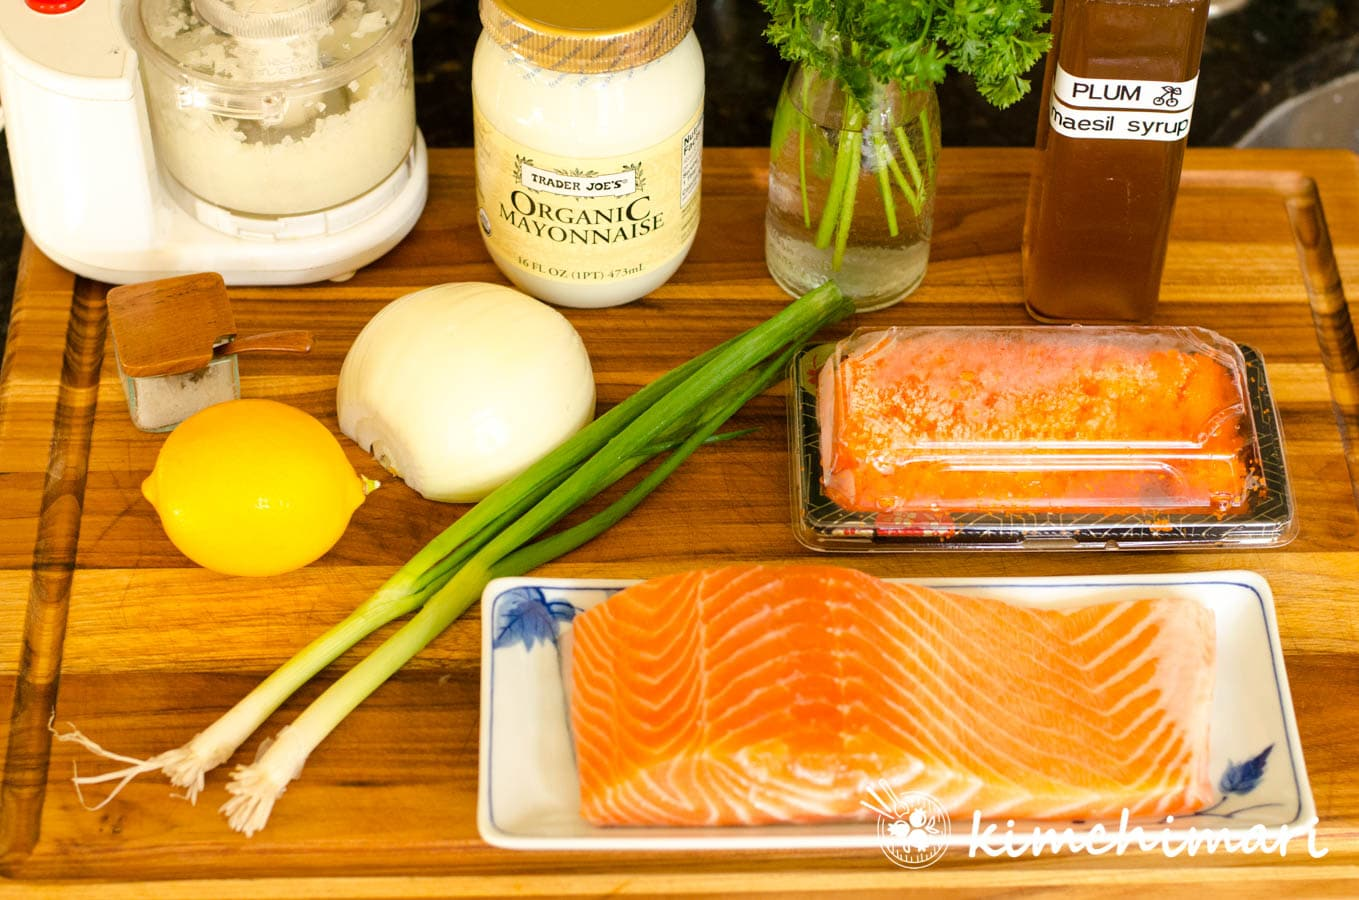 ingredients for baked salmon laid out on wood cutting board